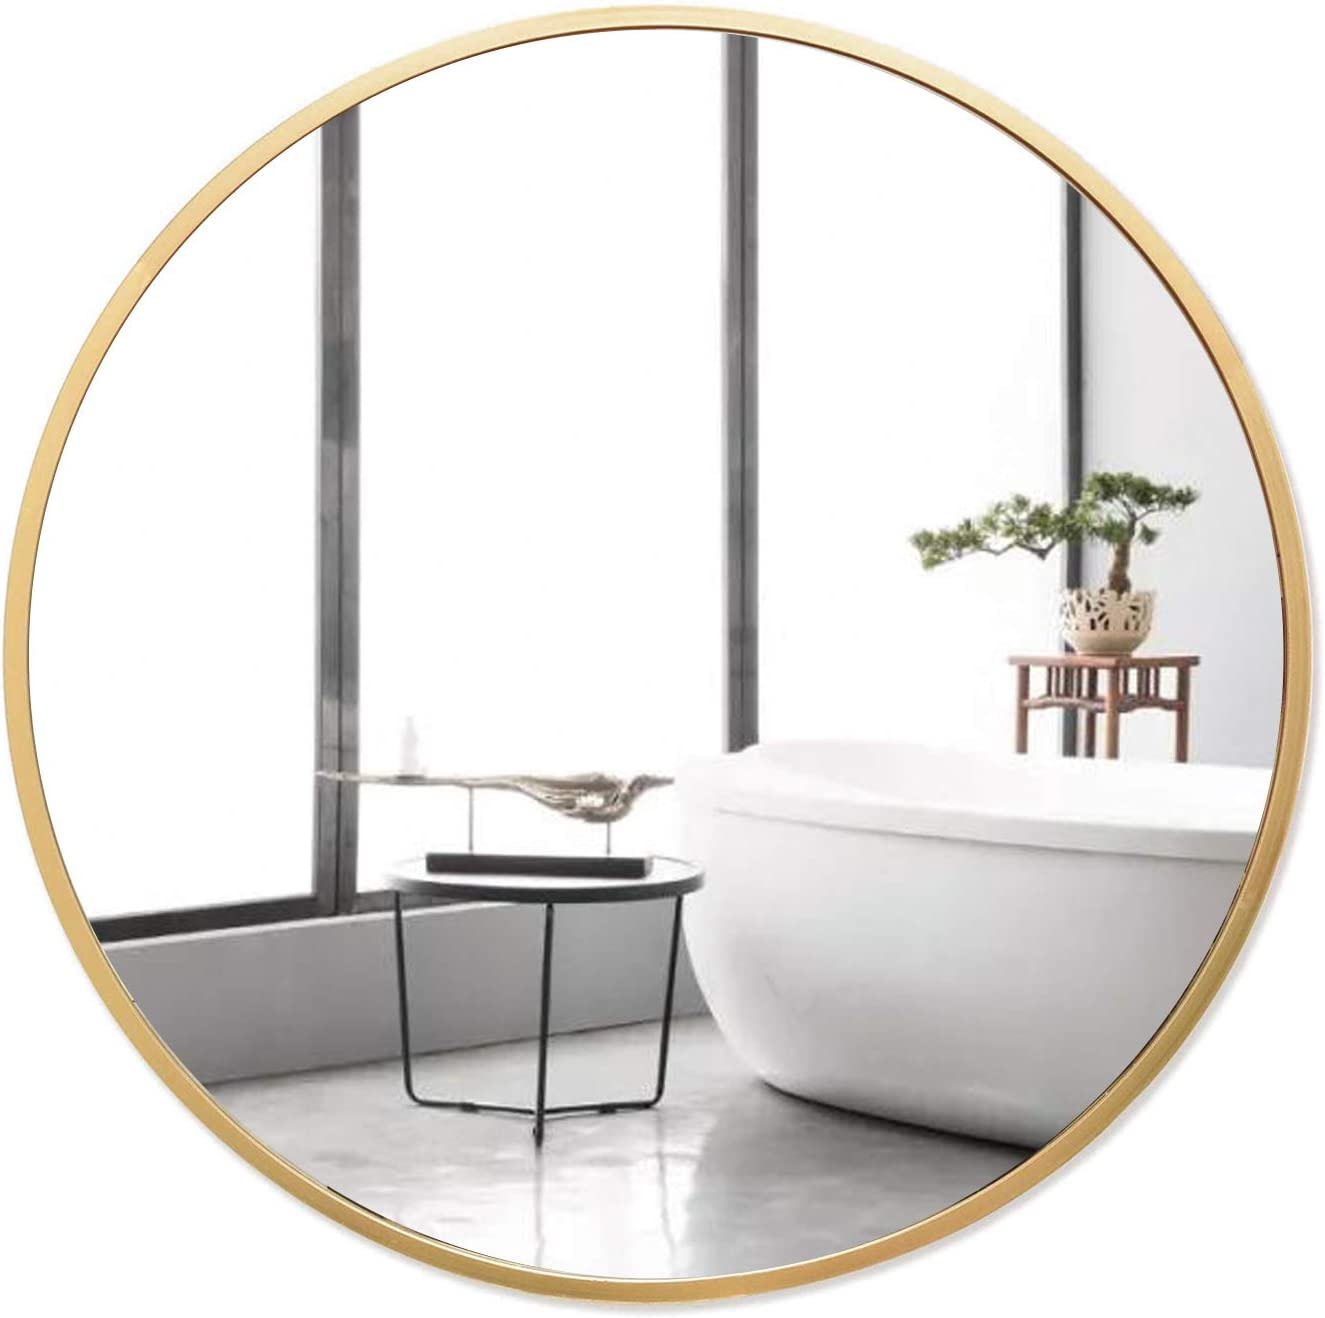 BURREN Gold Round Wall Mirror, 20-Inch Brushed Metal Framed Circular Mirror, Circle Wall Mounted Mirror for Bathroom, Vanity Room, Living Room, Entryways, Hallway, and More